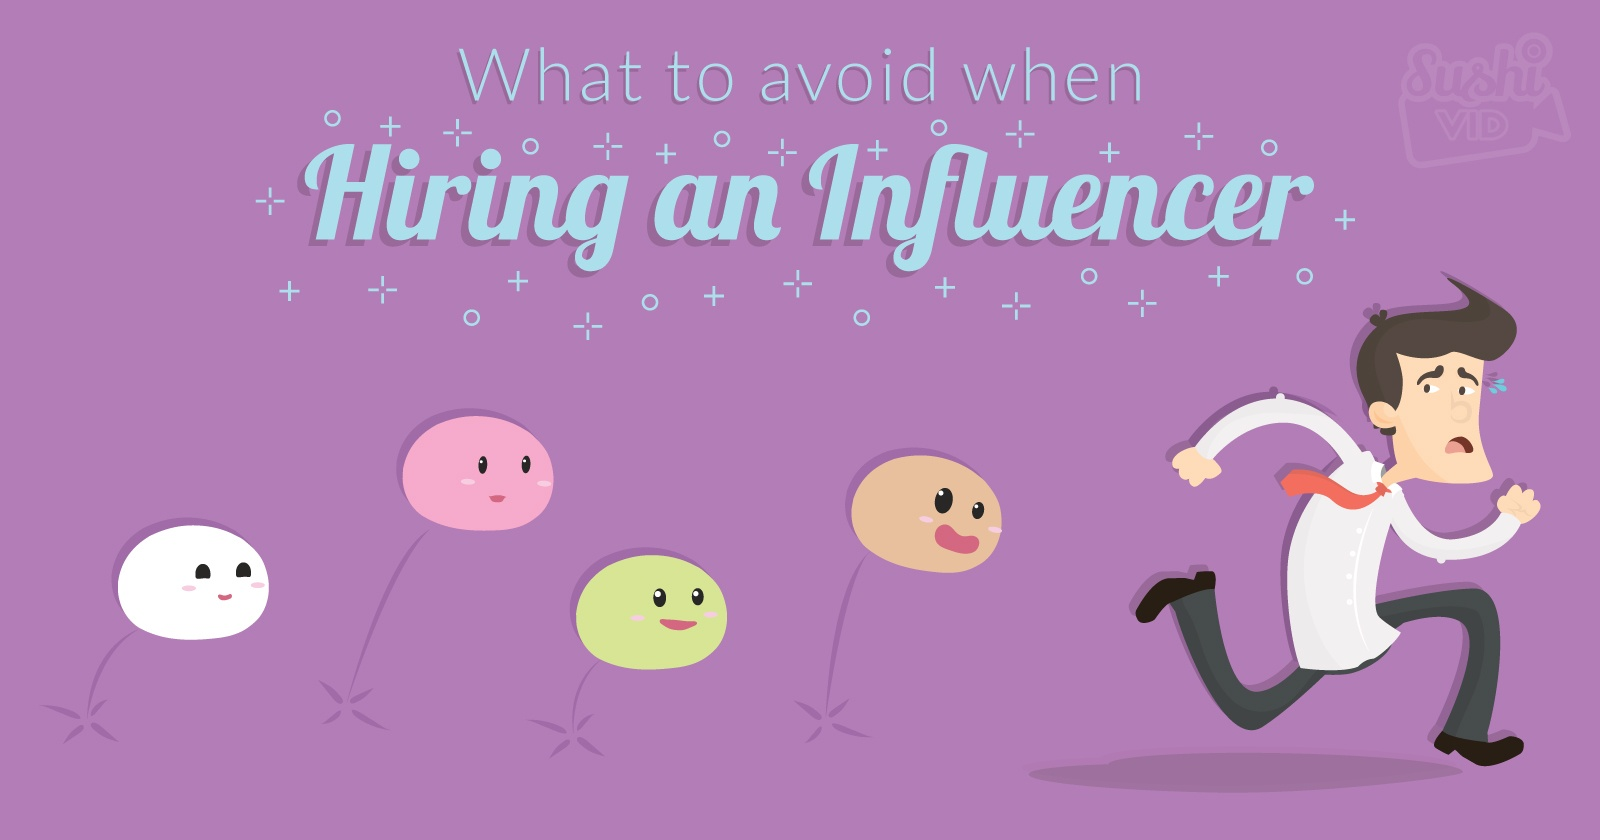 What To Avoid When Hiring An Influencer - Influencer Marketing.jpg